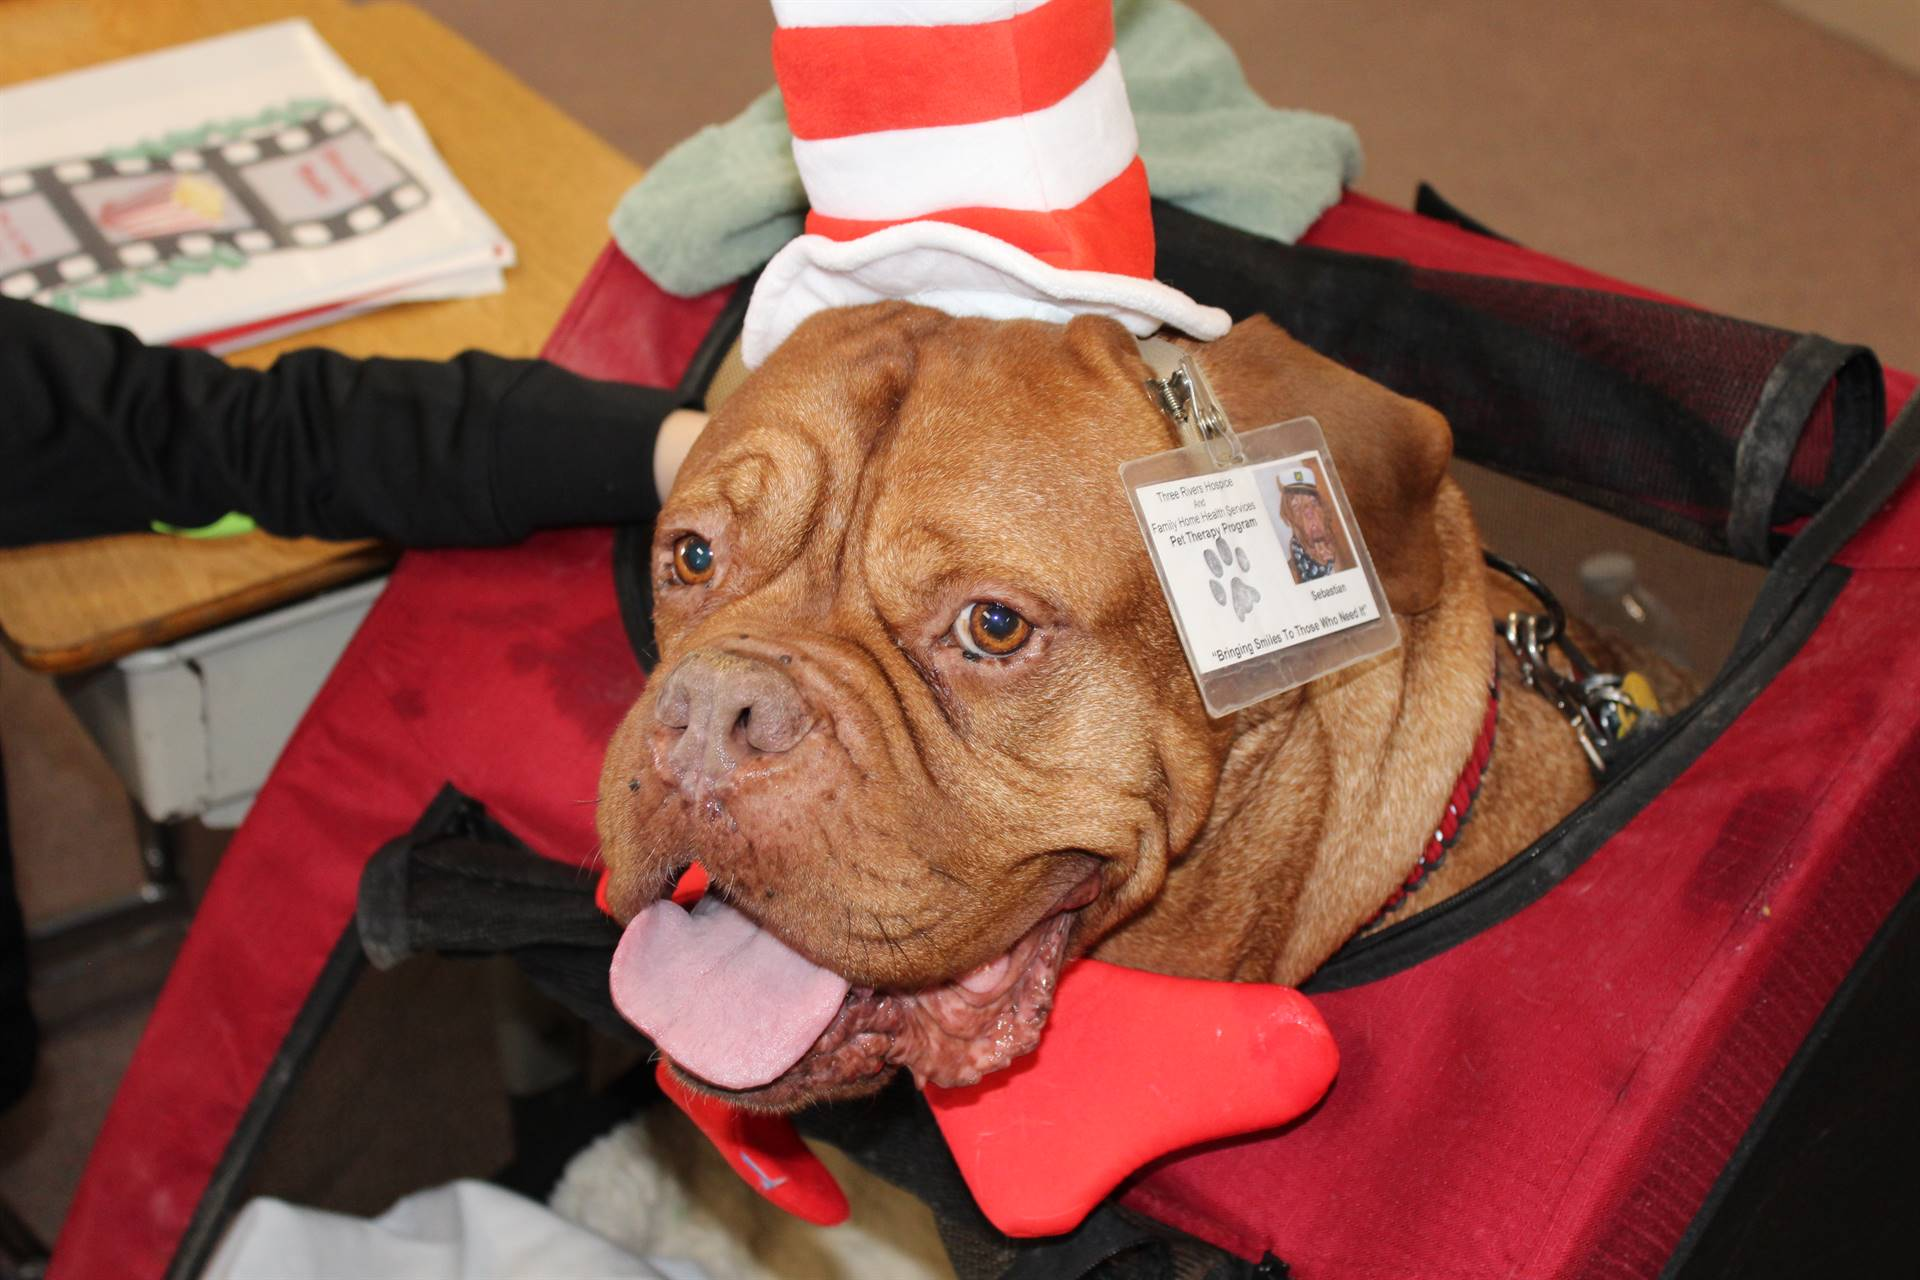 Rescue dog dressed as the Cat in the Hat